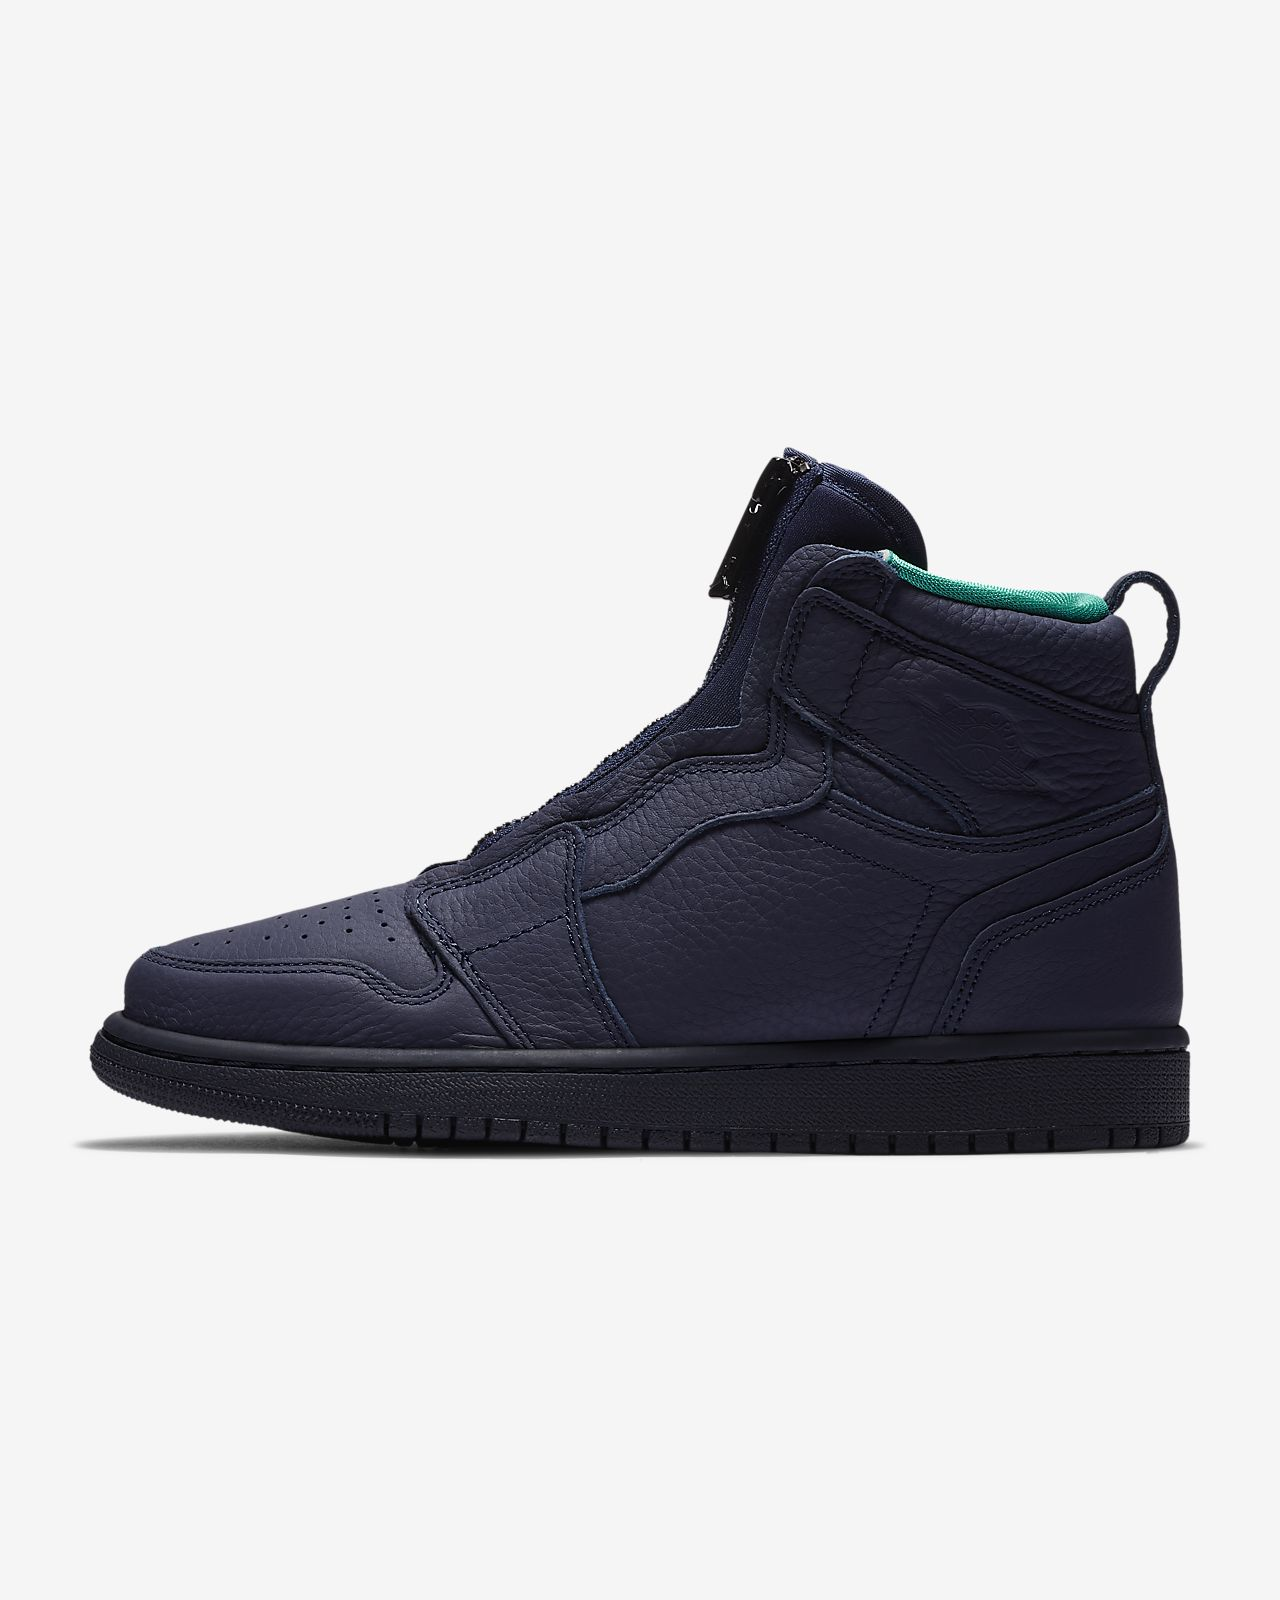 Air Jordan 1 High Zip Damenschuh